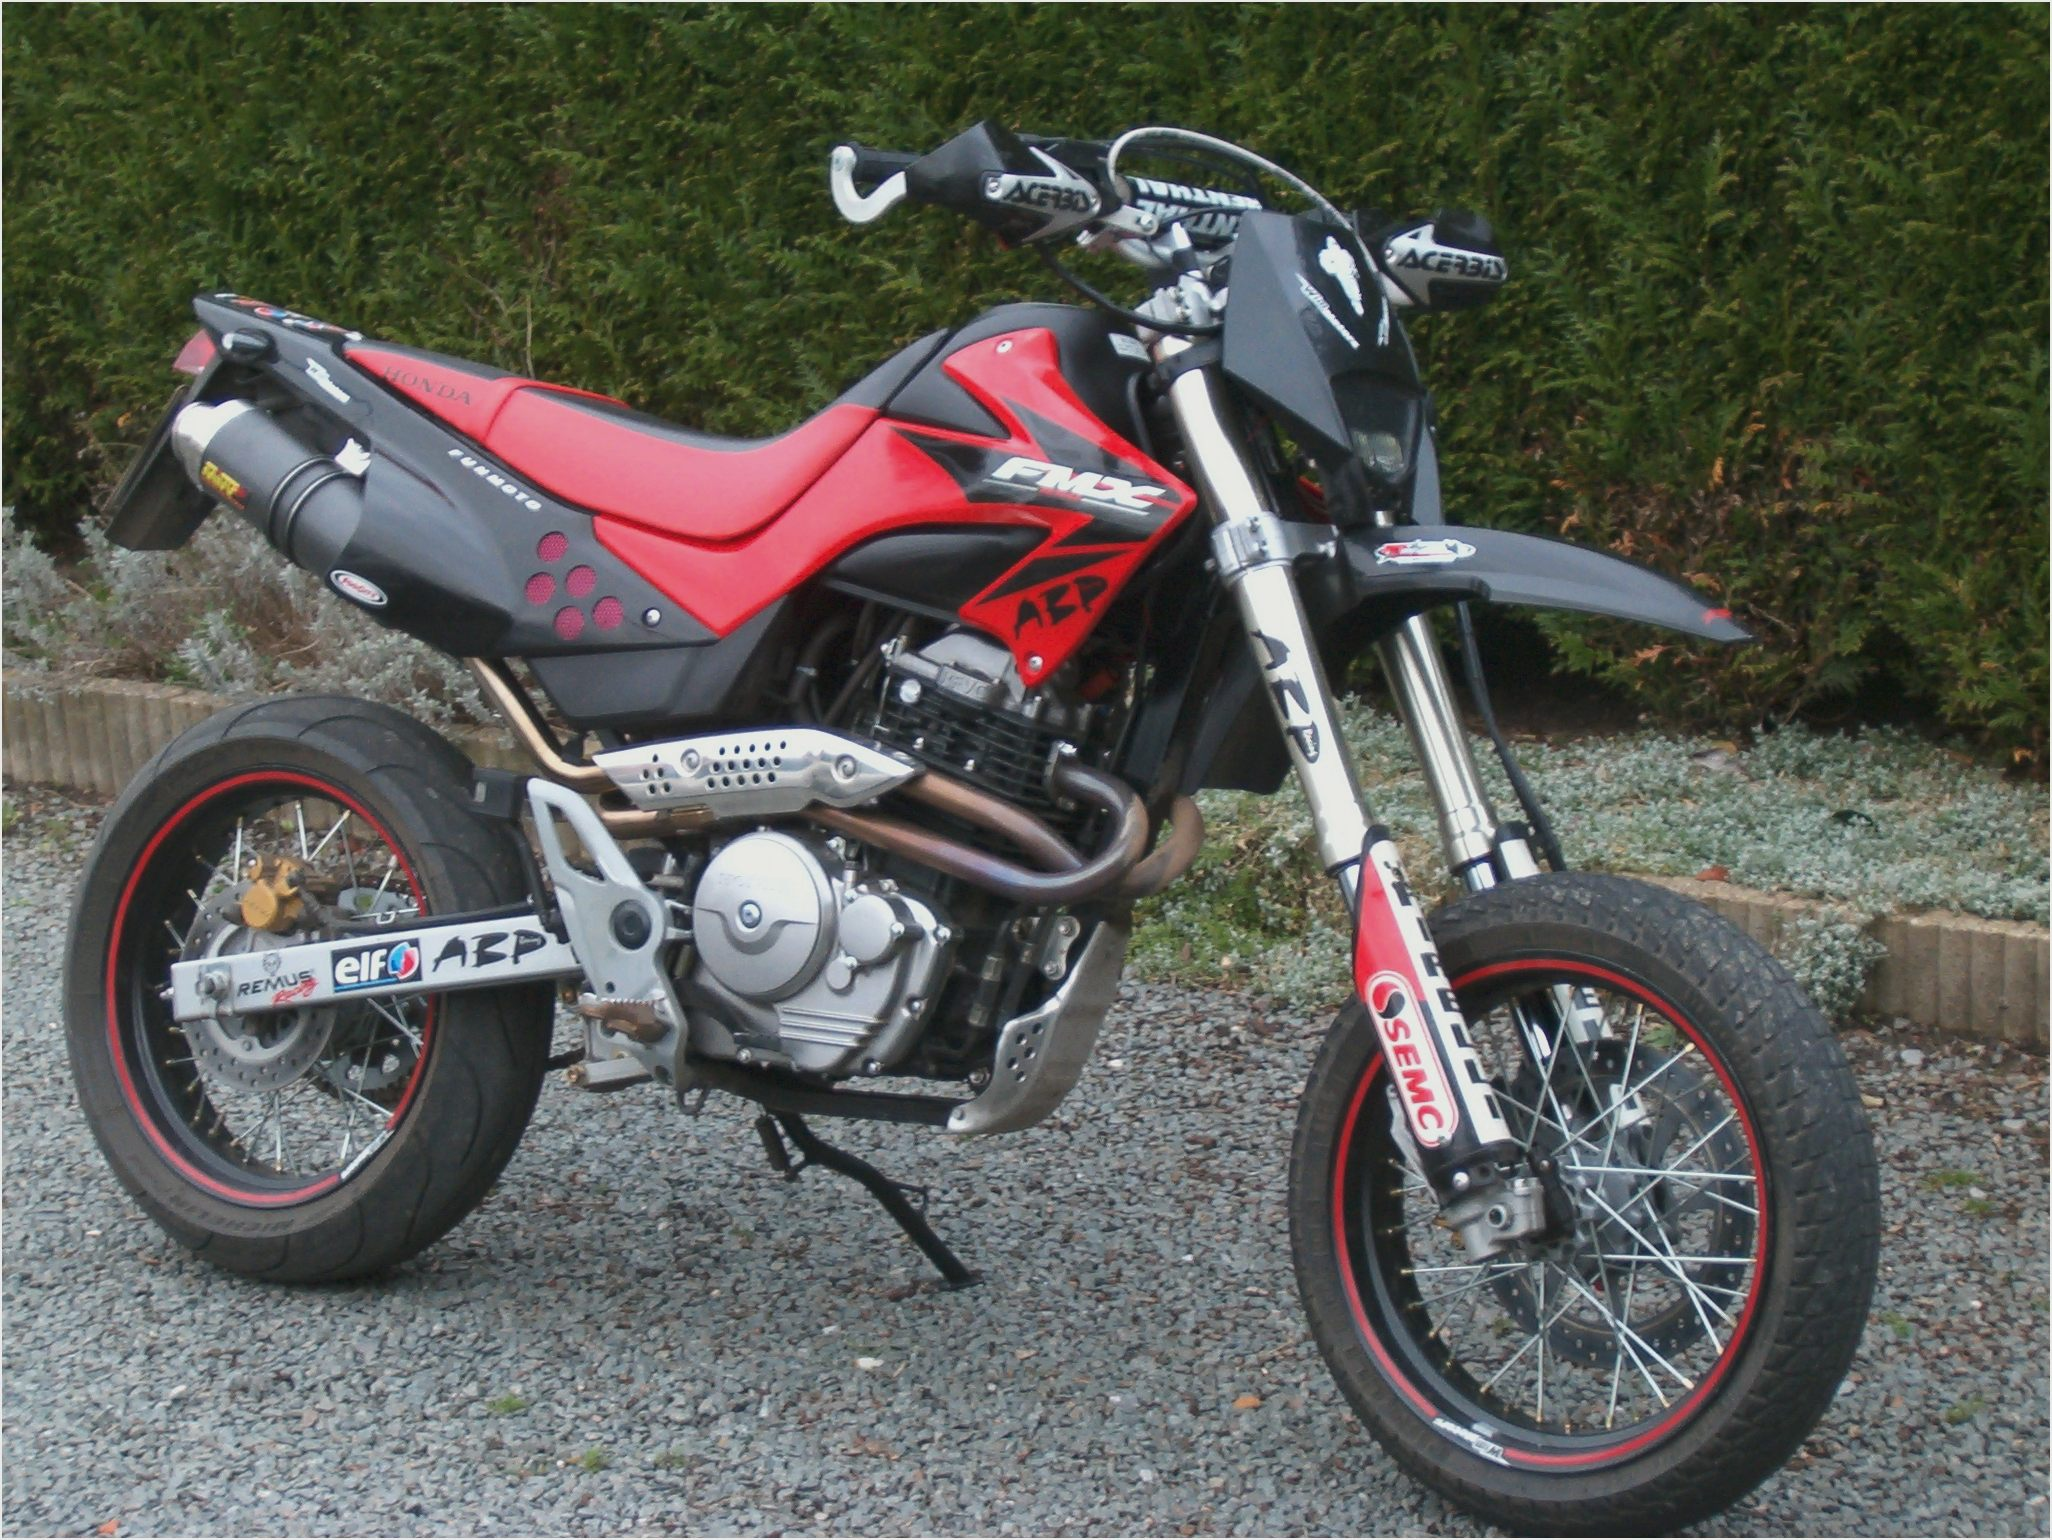 2005 honda fmx 650 pics specs and information. Black Bedroom Furniture Sets. Home Design Ideas